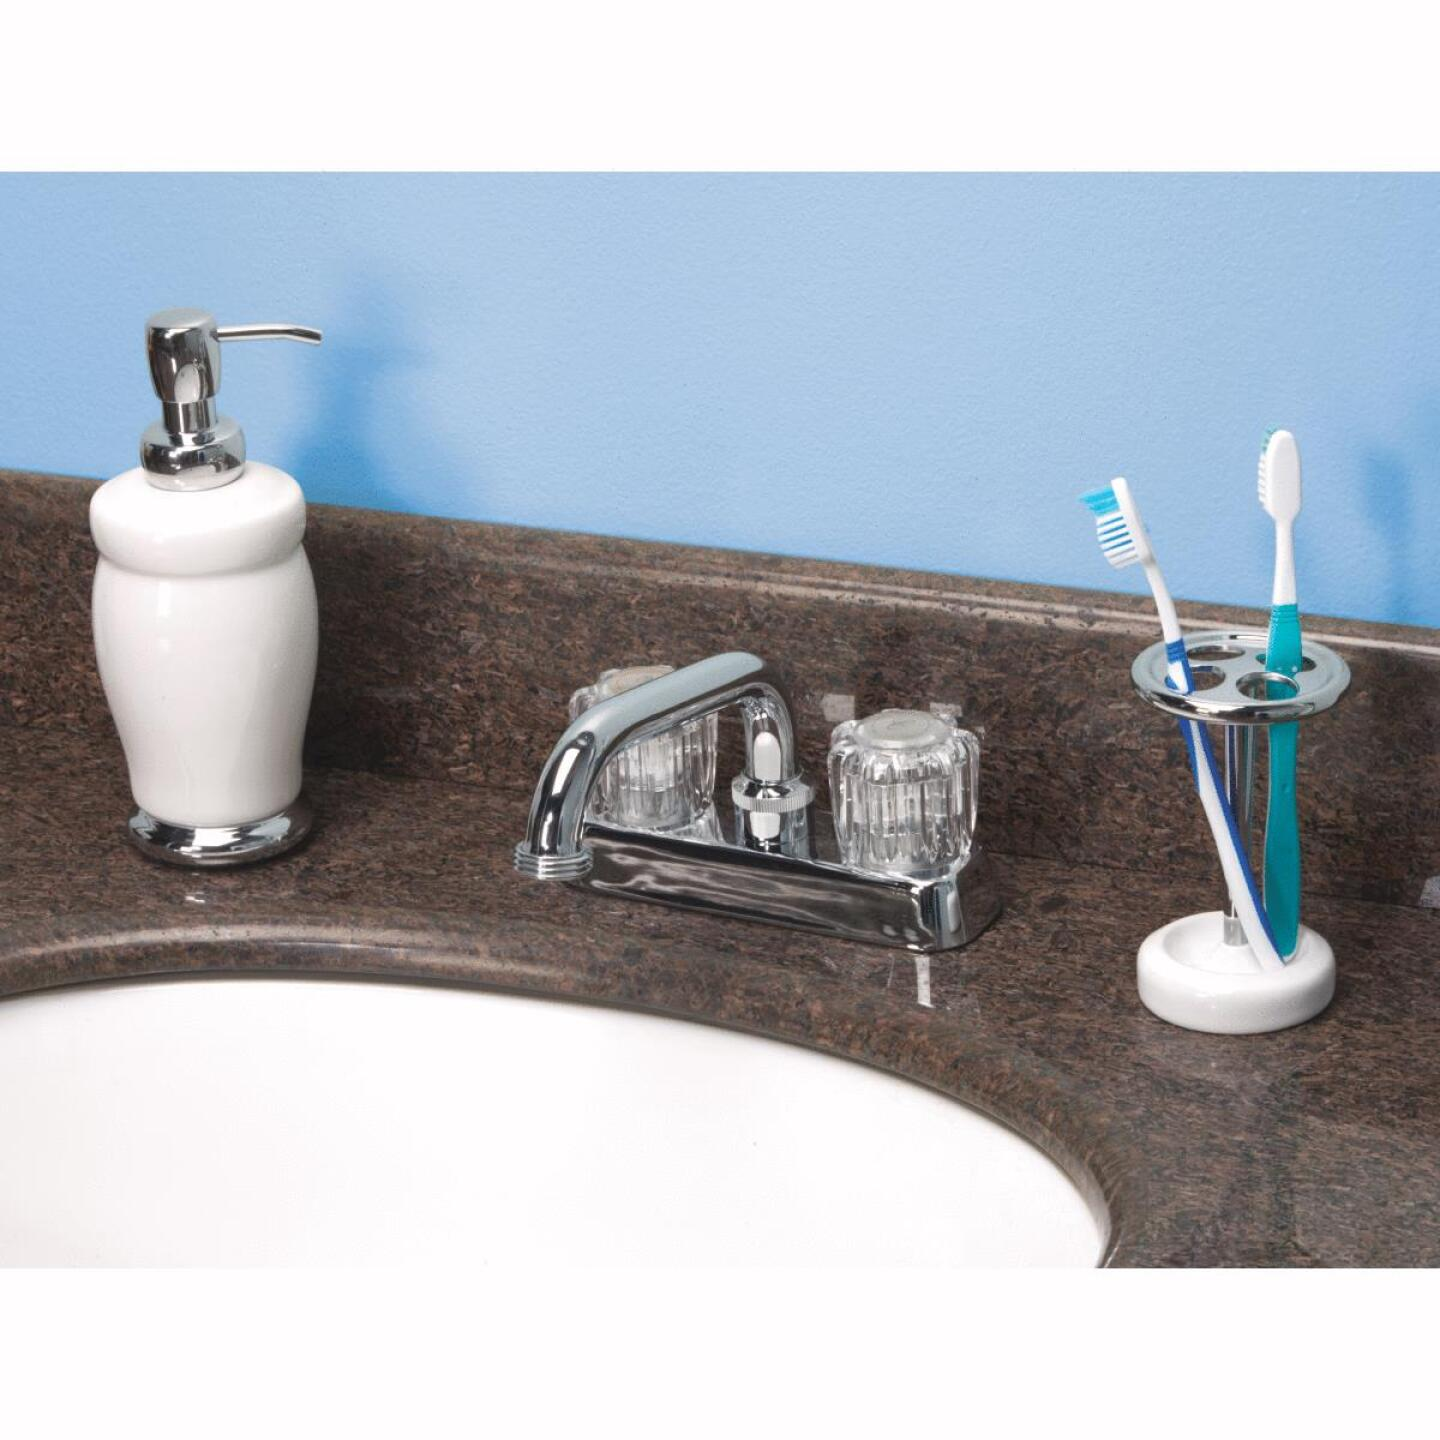 Home Impressions Chrome 4 In. Installation Solid Brass, Acrylic Handle Laundry Faucet Image 2